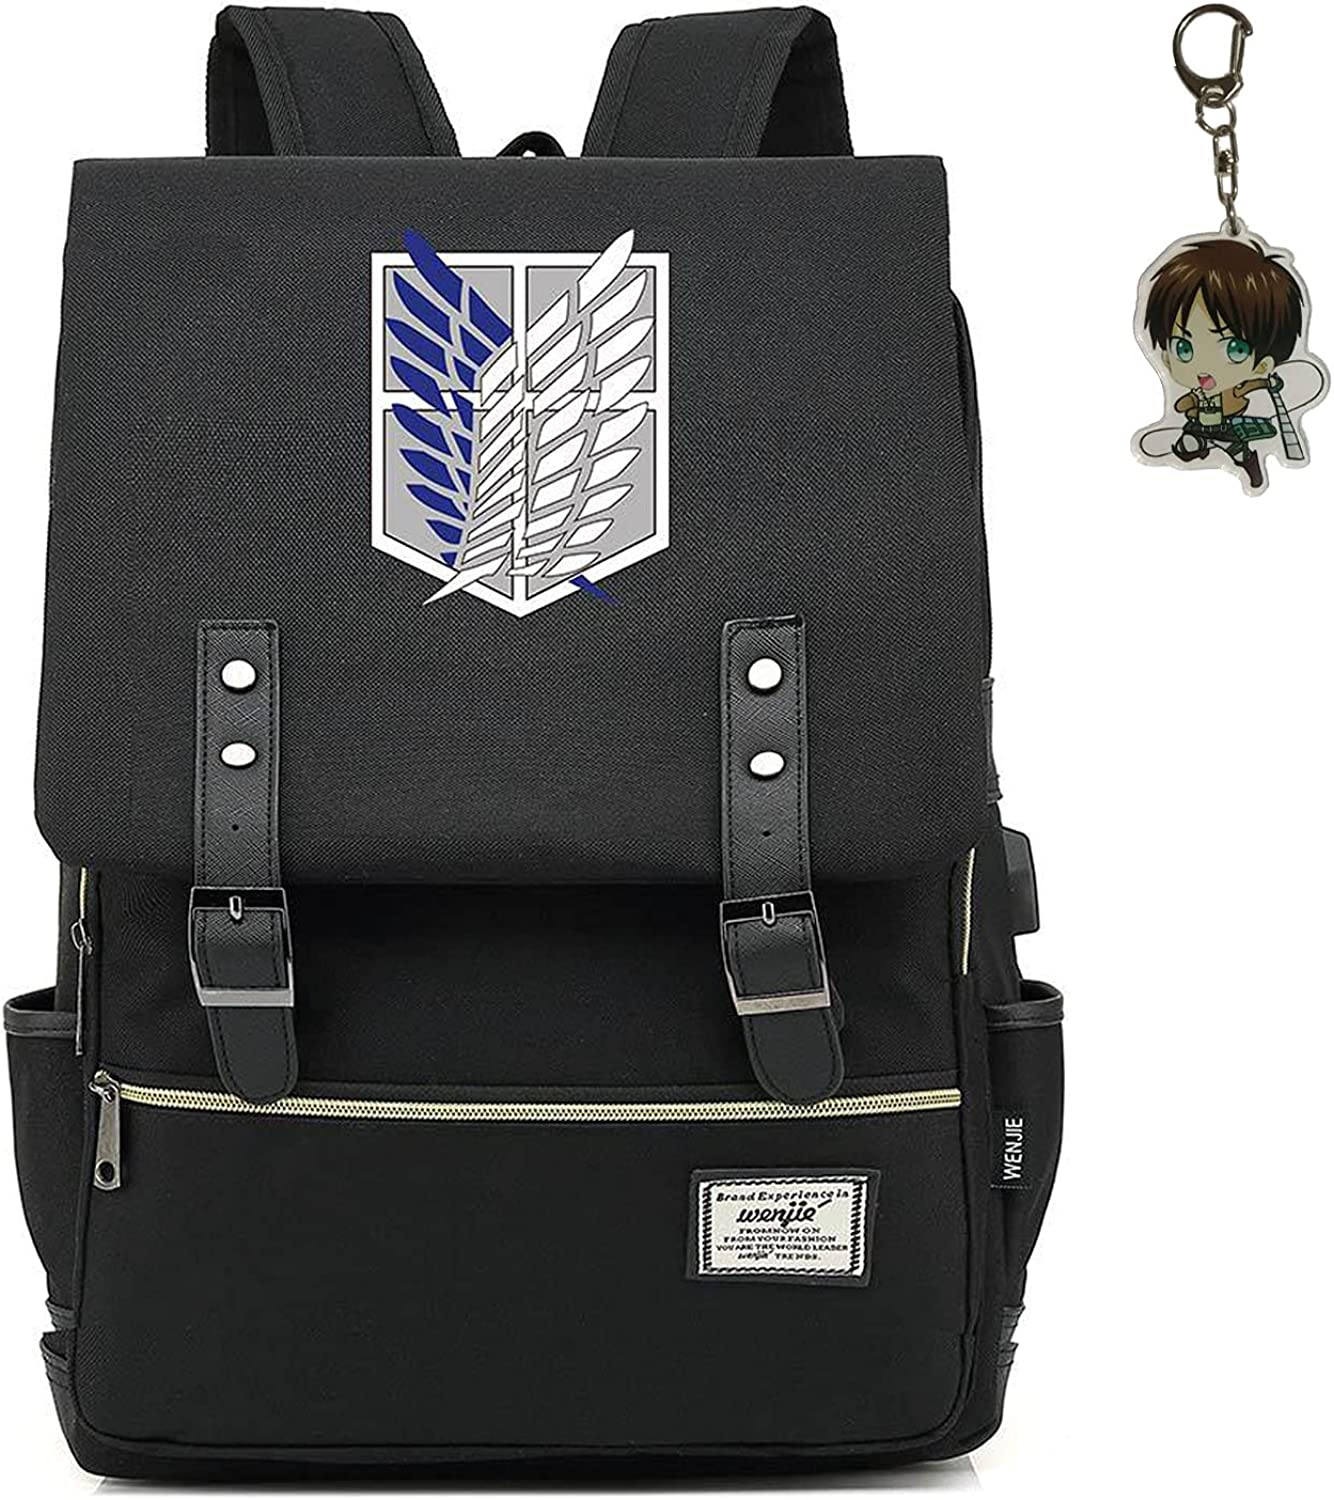 Memory Max 81% OFF meteor Attack on Titan Backpack Survey Eren Fashionable Corps S Anime